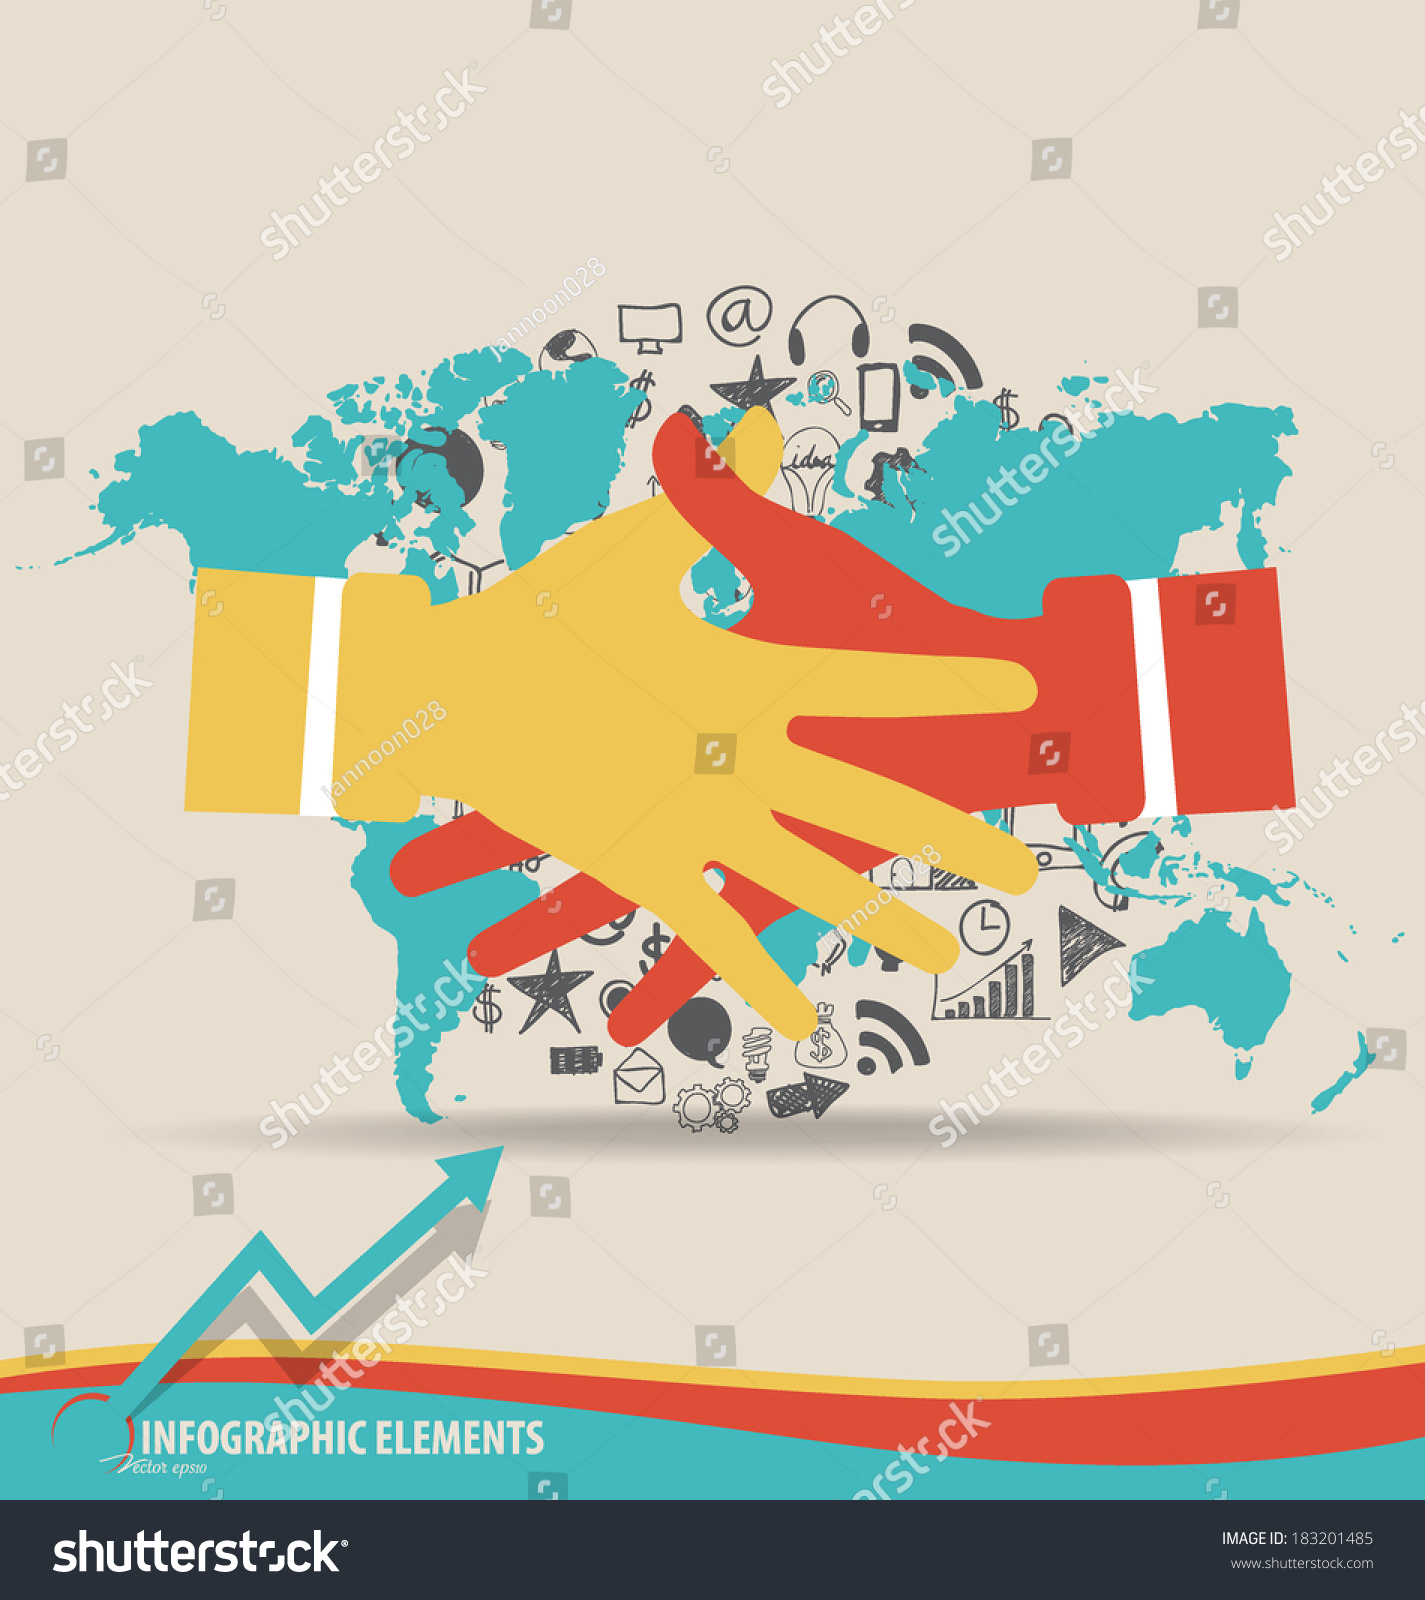 Handshake hands application world map vector stock vector handshake hands with application and world map vector illustration gumiabroncs Gallery